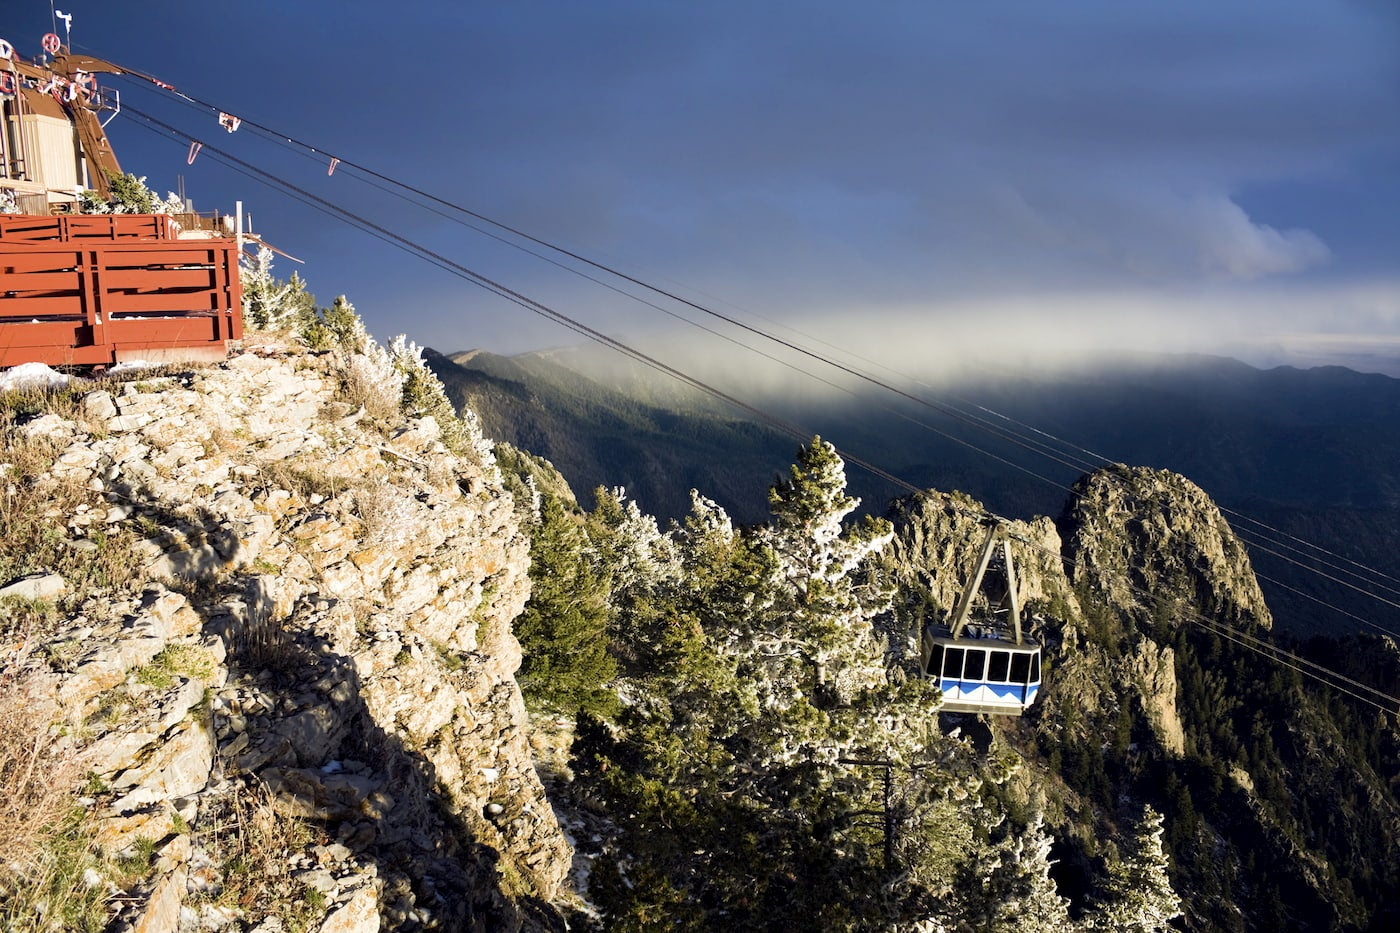 Tram on wire cables in the mountains with dark cloud in the background.